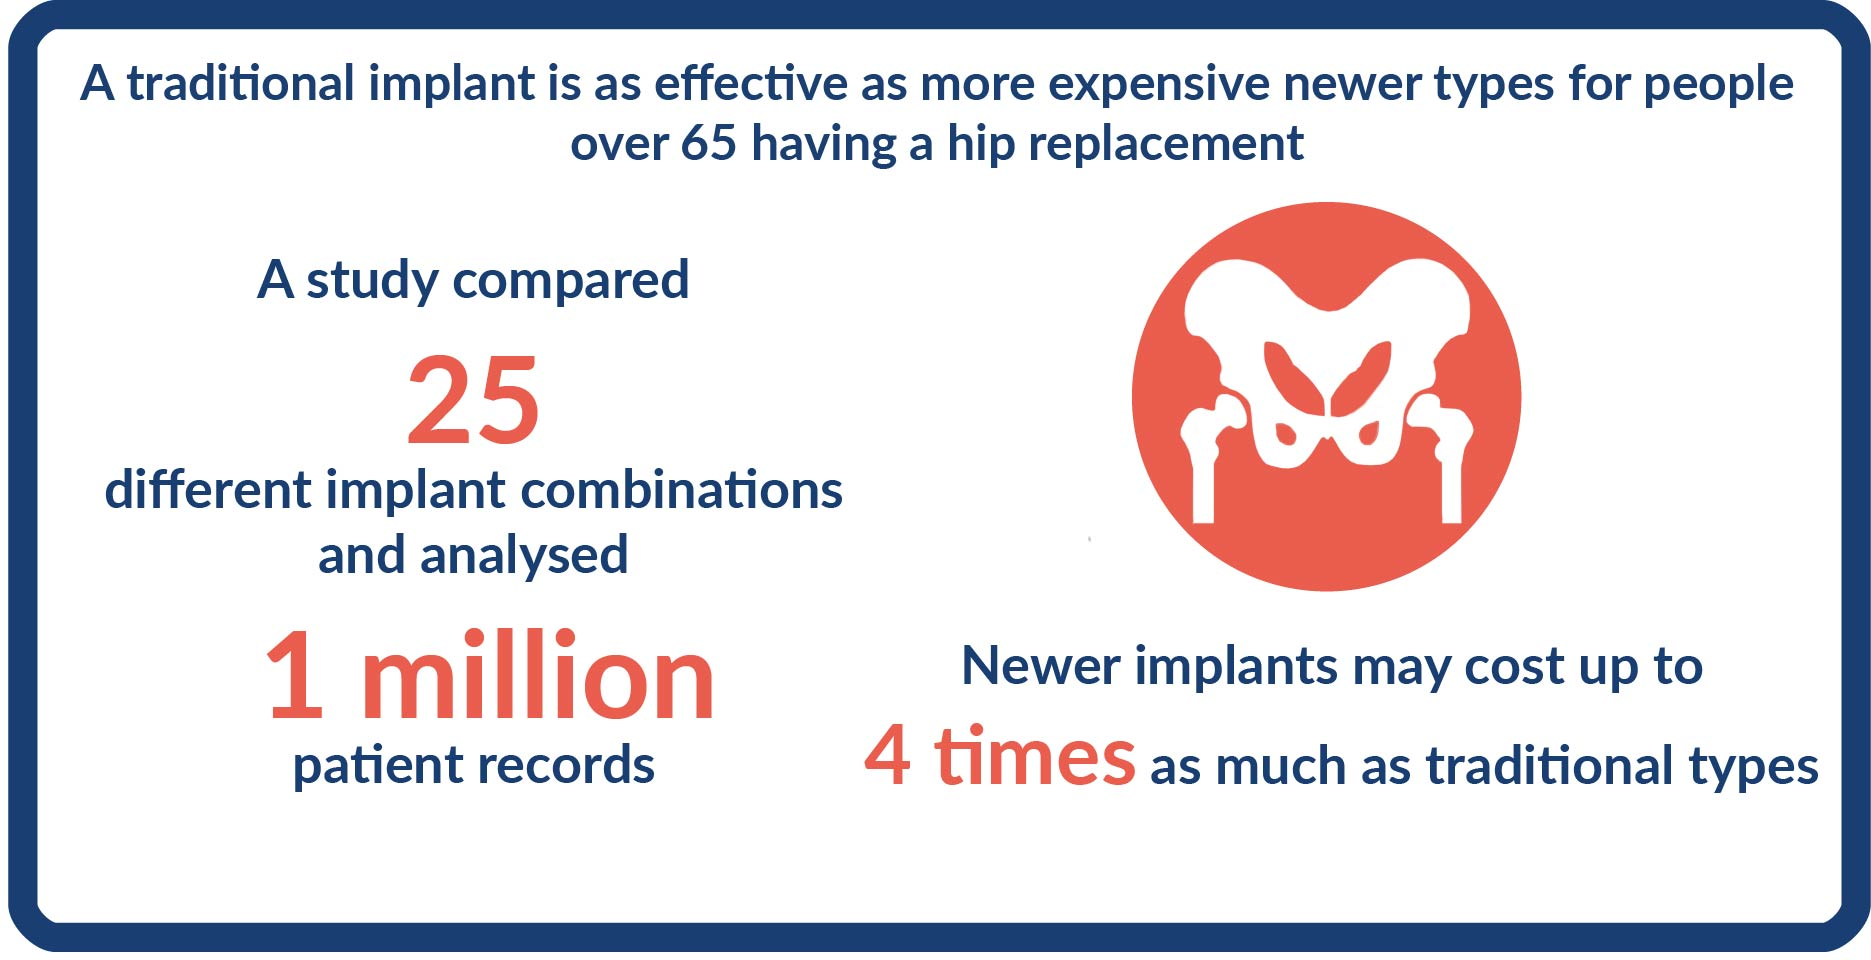 A graphic stating that newer impants may cost up to 4 times as much as traditional types